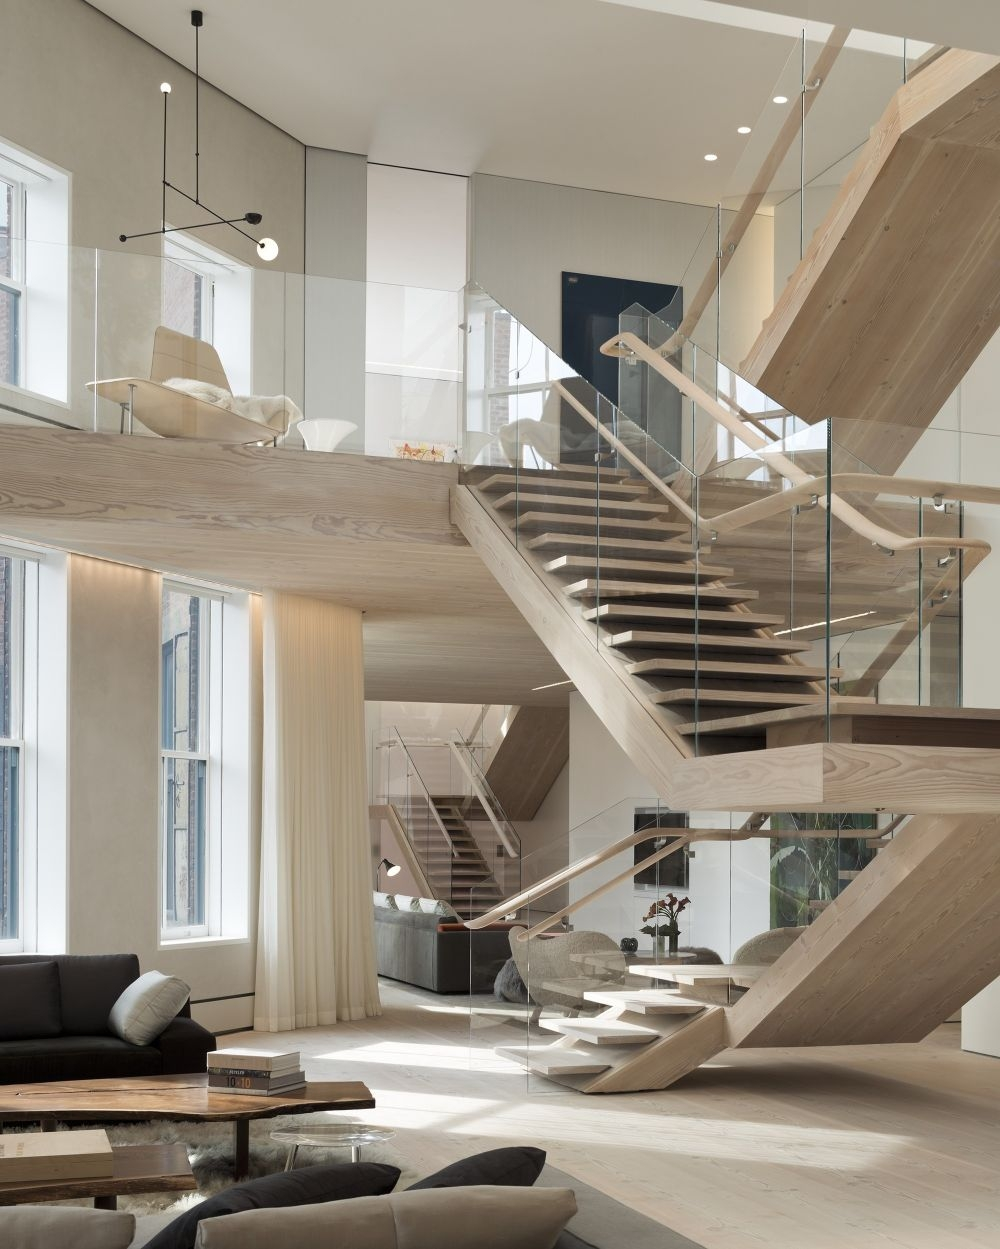 Staircase Designs That Bring Out The Beauty In Every Home   House Interior Stairs Design   Modern   Separated   Architecture   Stunning   Classic Interior